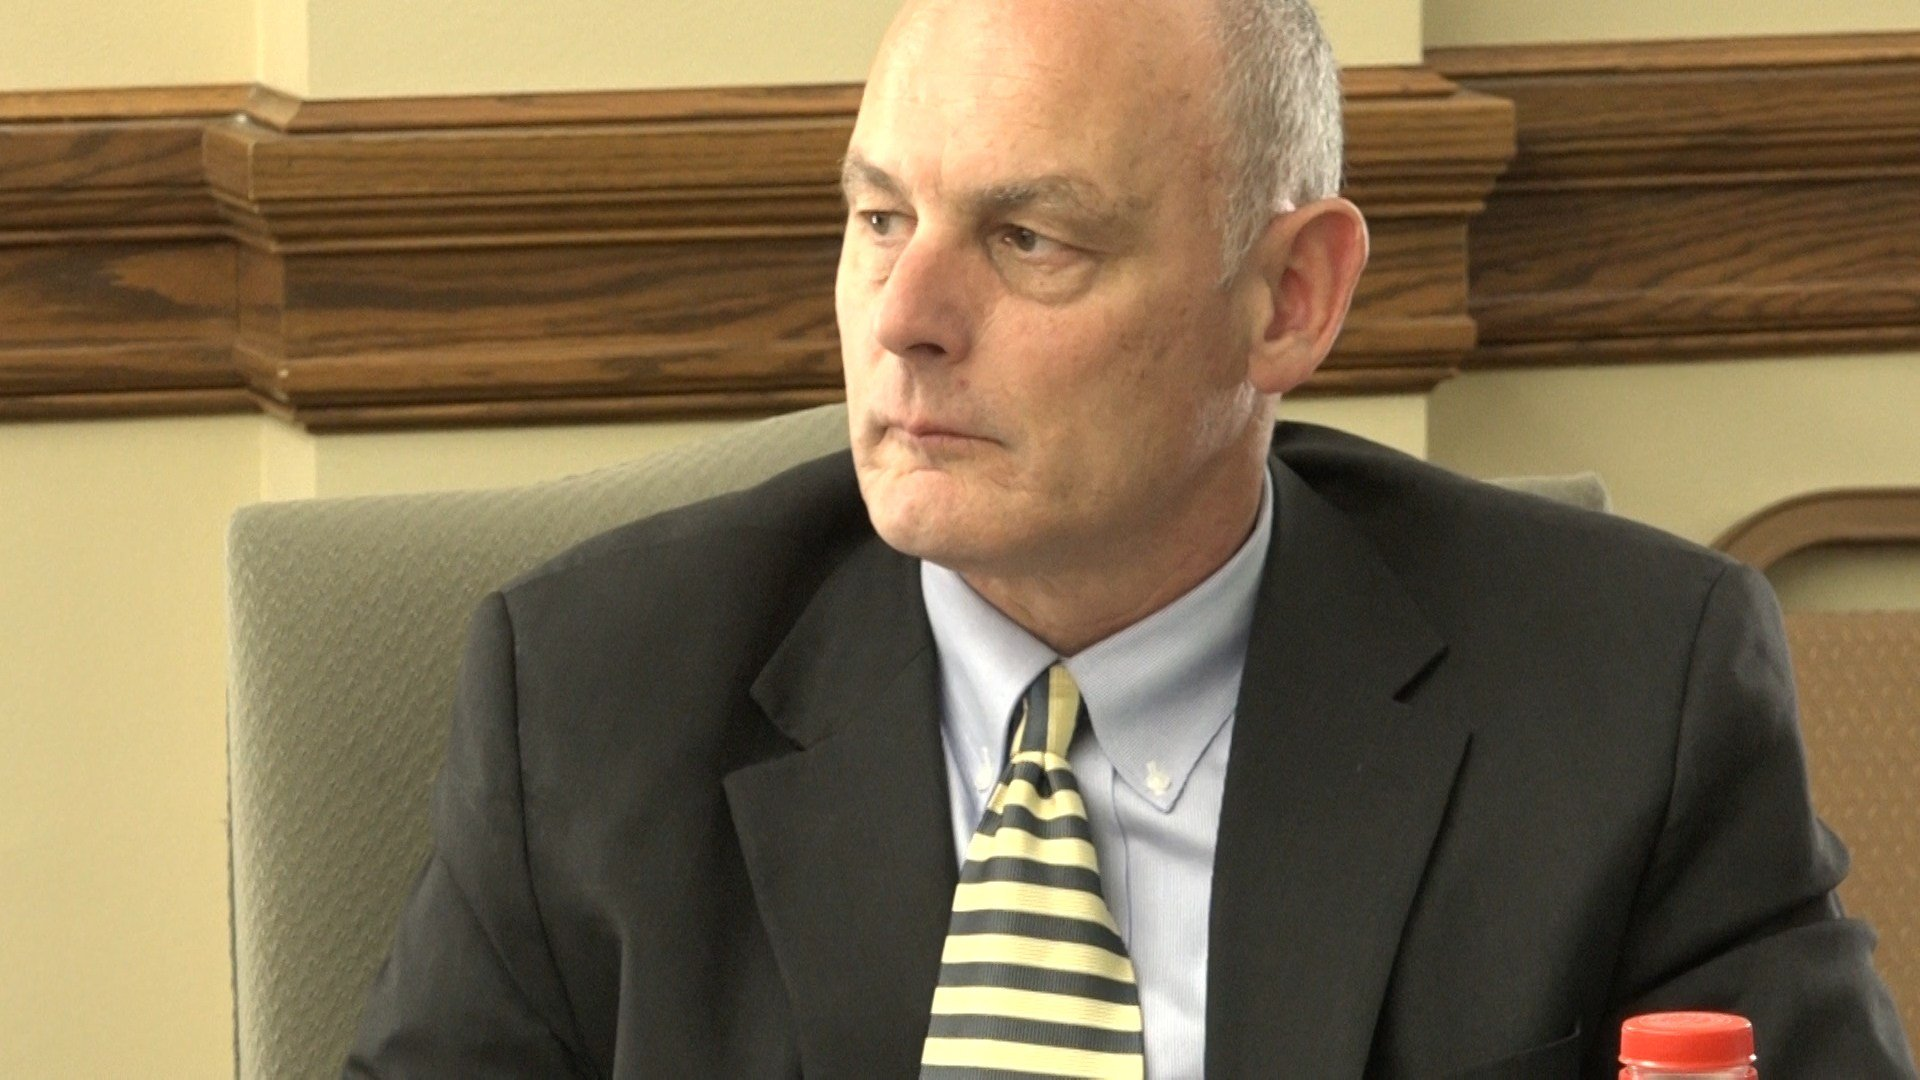 Former state Corrections Director Mike Batista